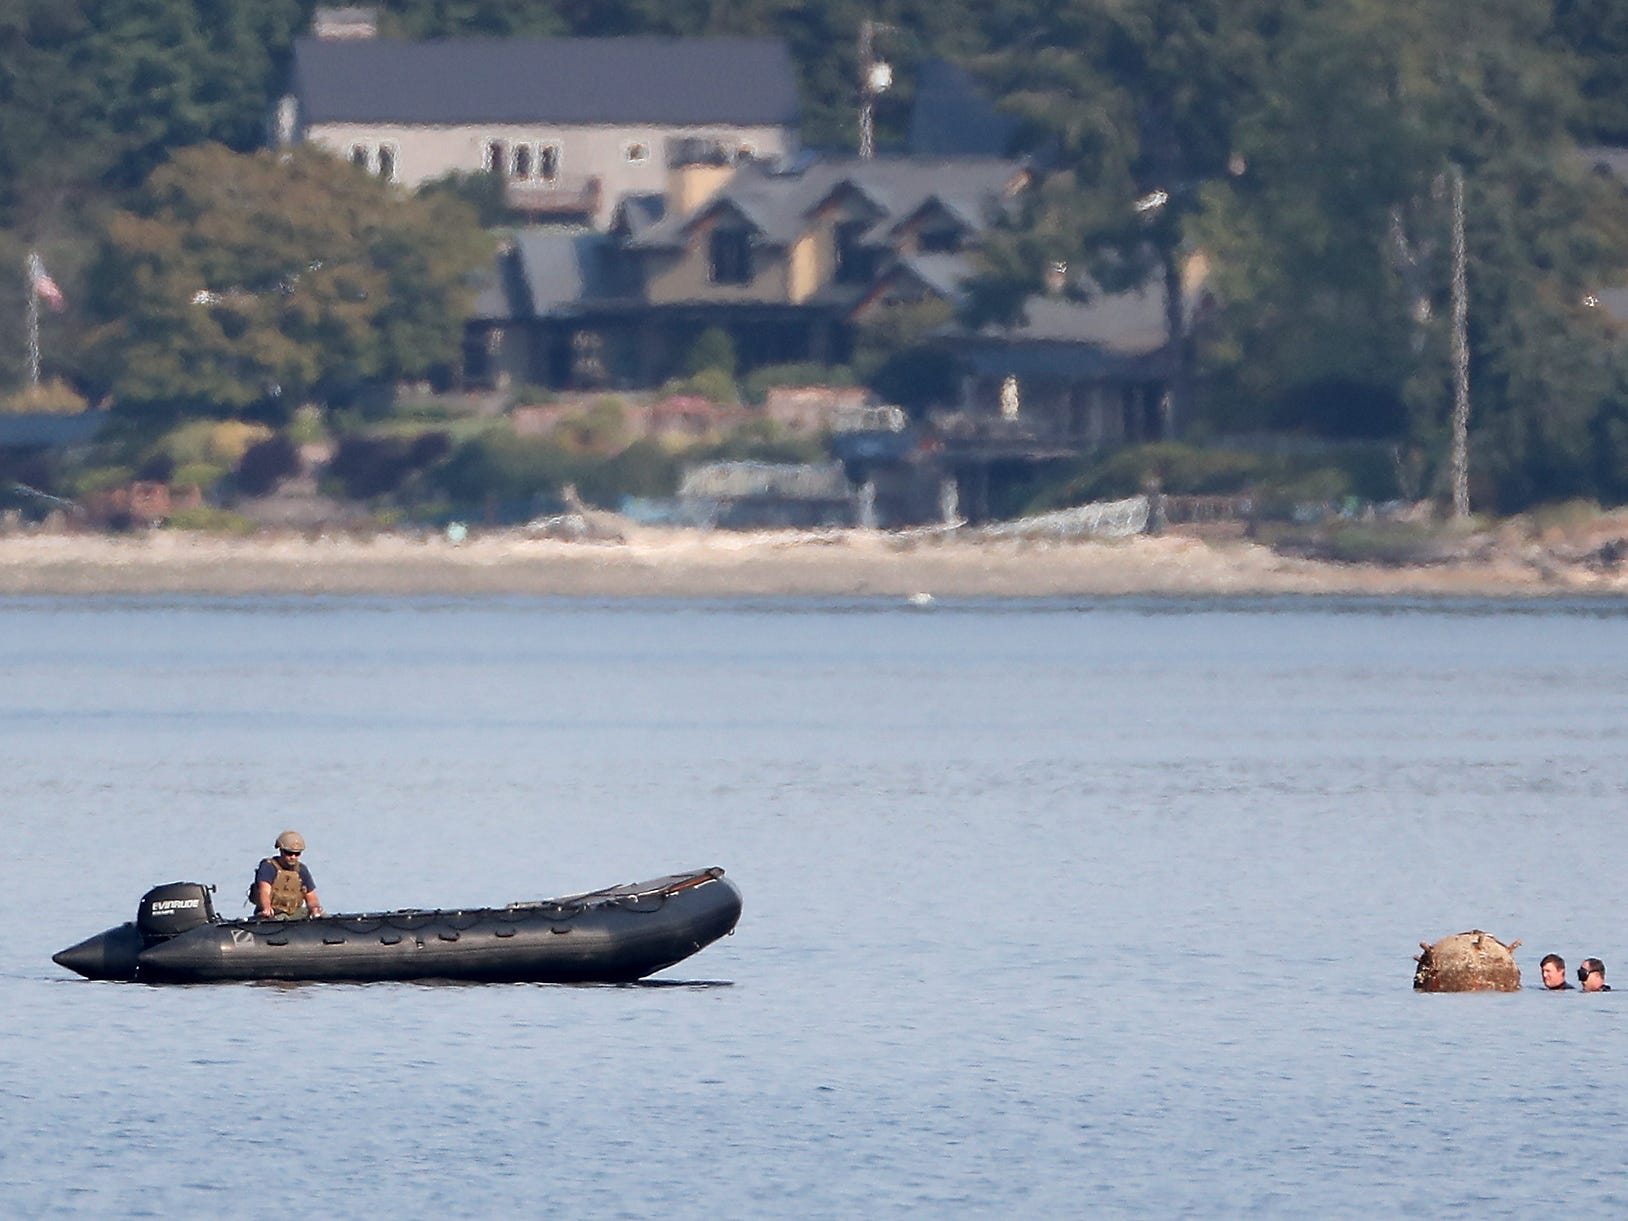 """A pair of US Navy divers attach a rope to a """"reported unexploded ordnance"""" drifting in the water between Brownsville Marina and Bainbridge Island, Washington on Tuesday, August 28, 2018. (AP Photo / Meegan M. Reid, Kitsap Sun)"""